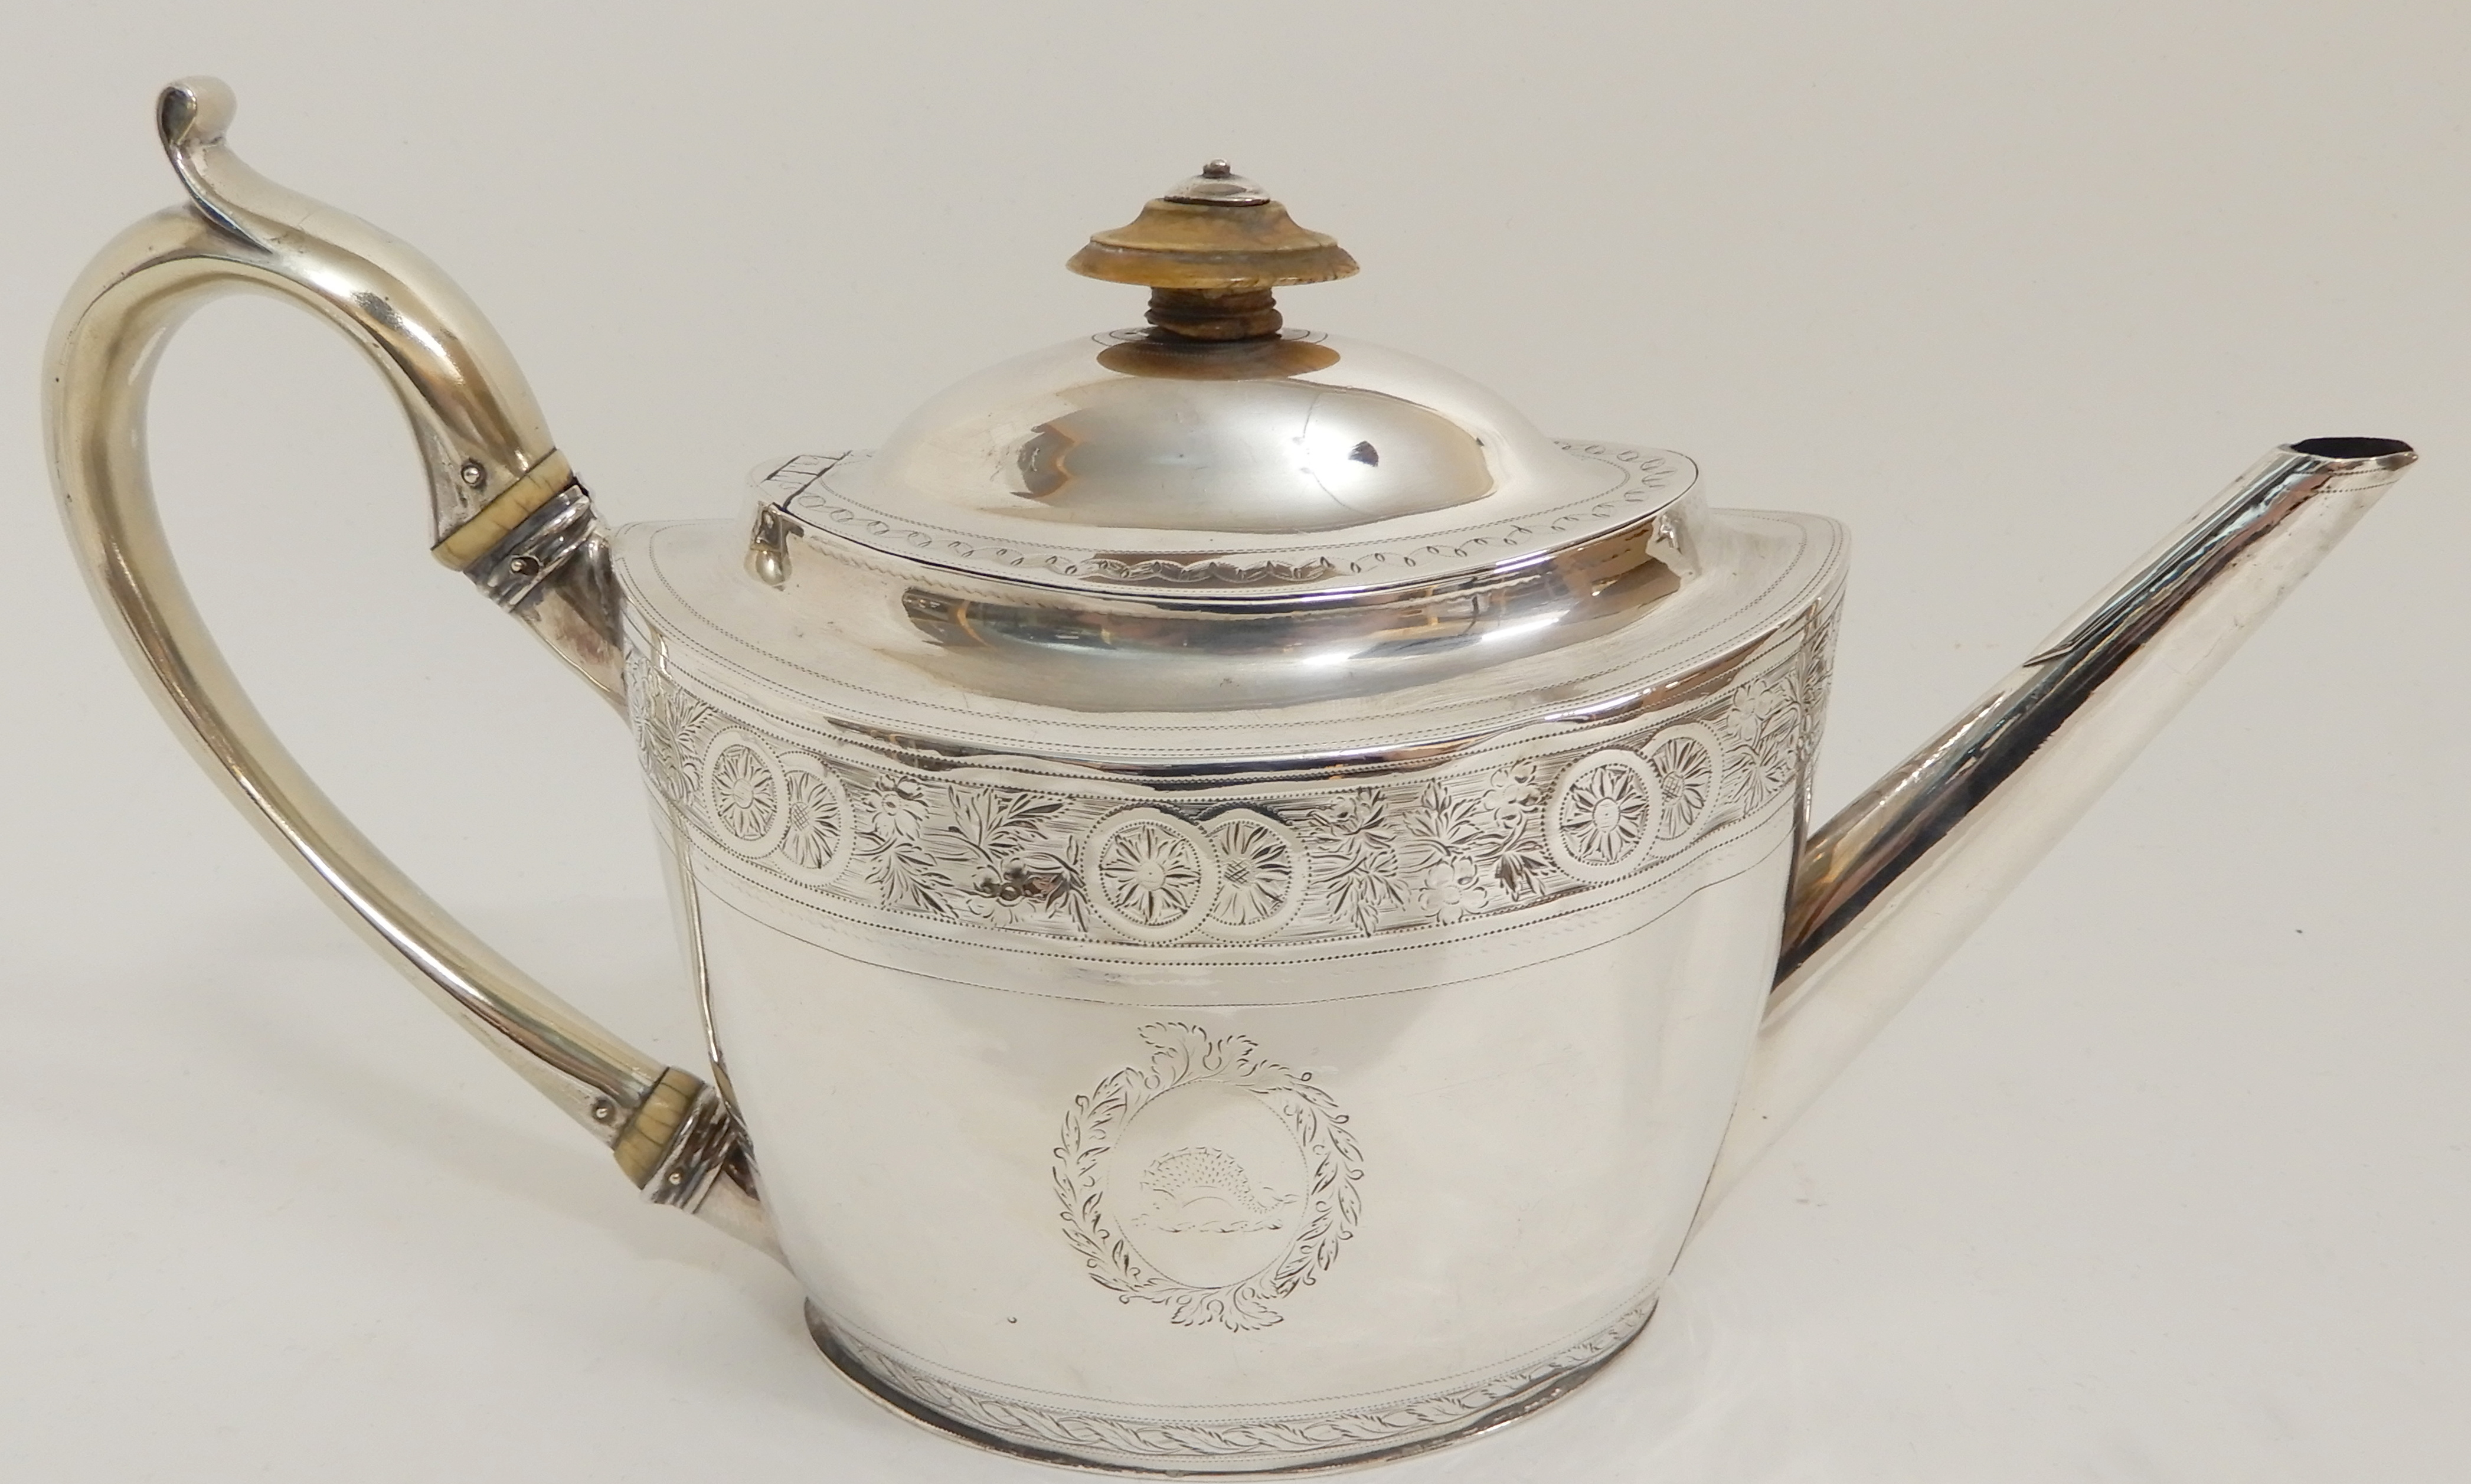 Lot 147 - A GEORGE III SILVER TEAPOT by Thomas Wallis II, London 1798, of oval form with band of roundel and